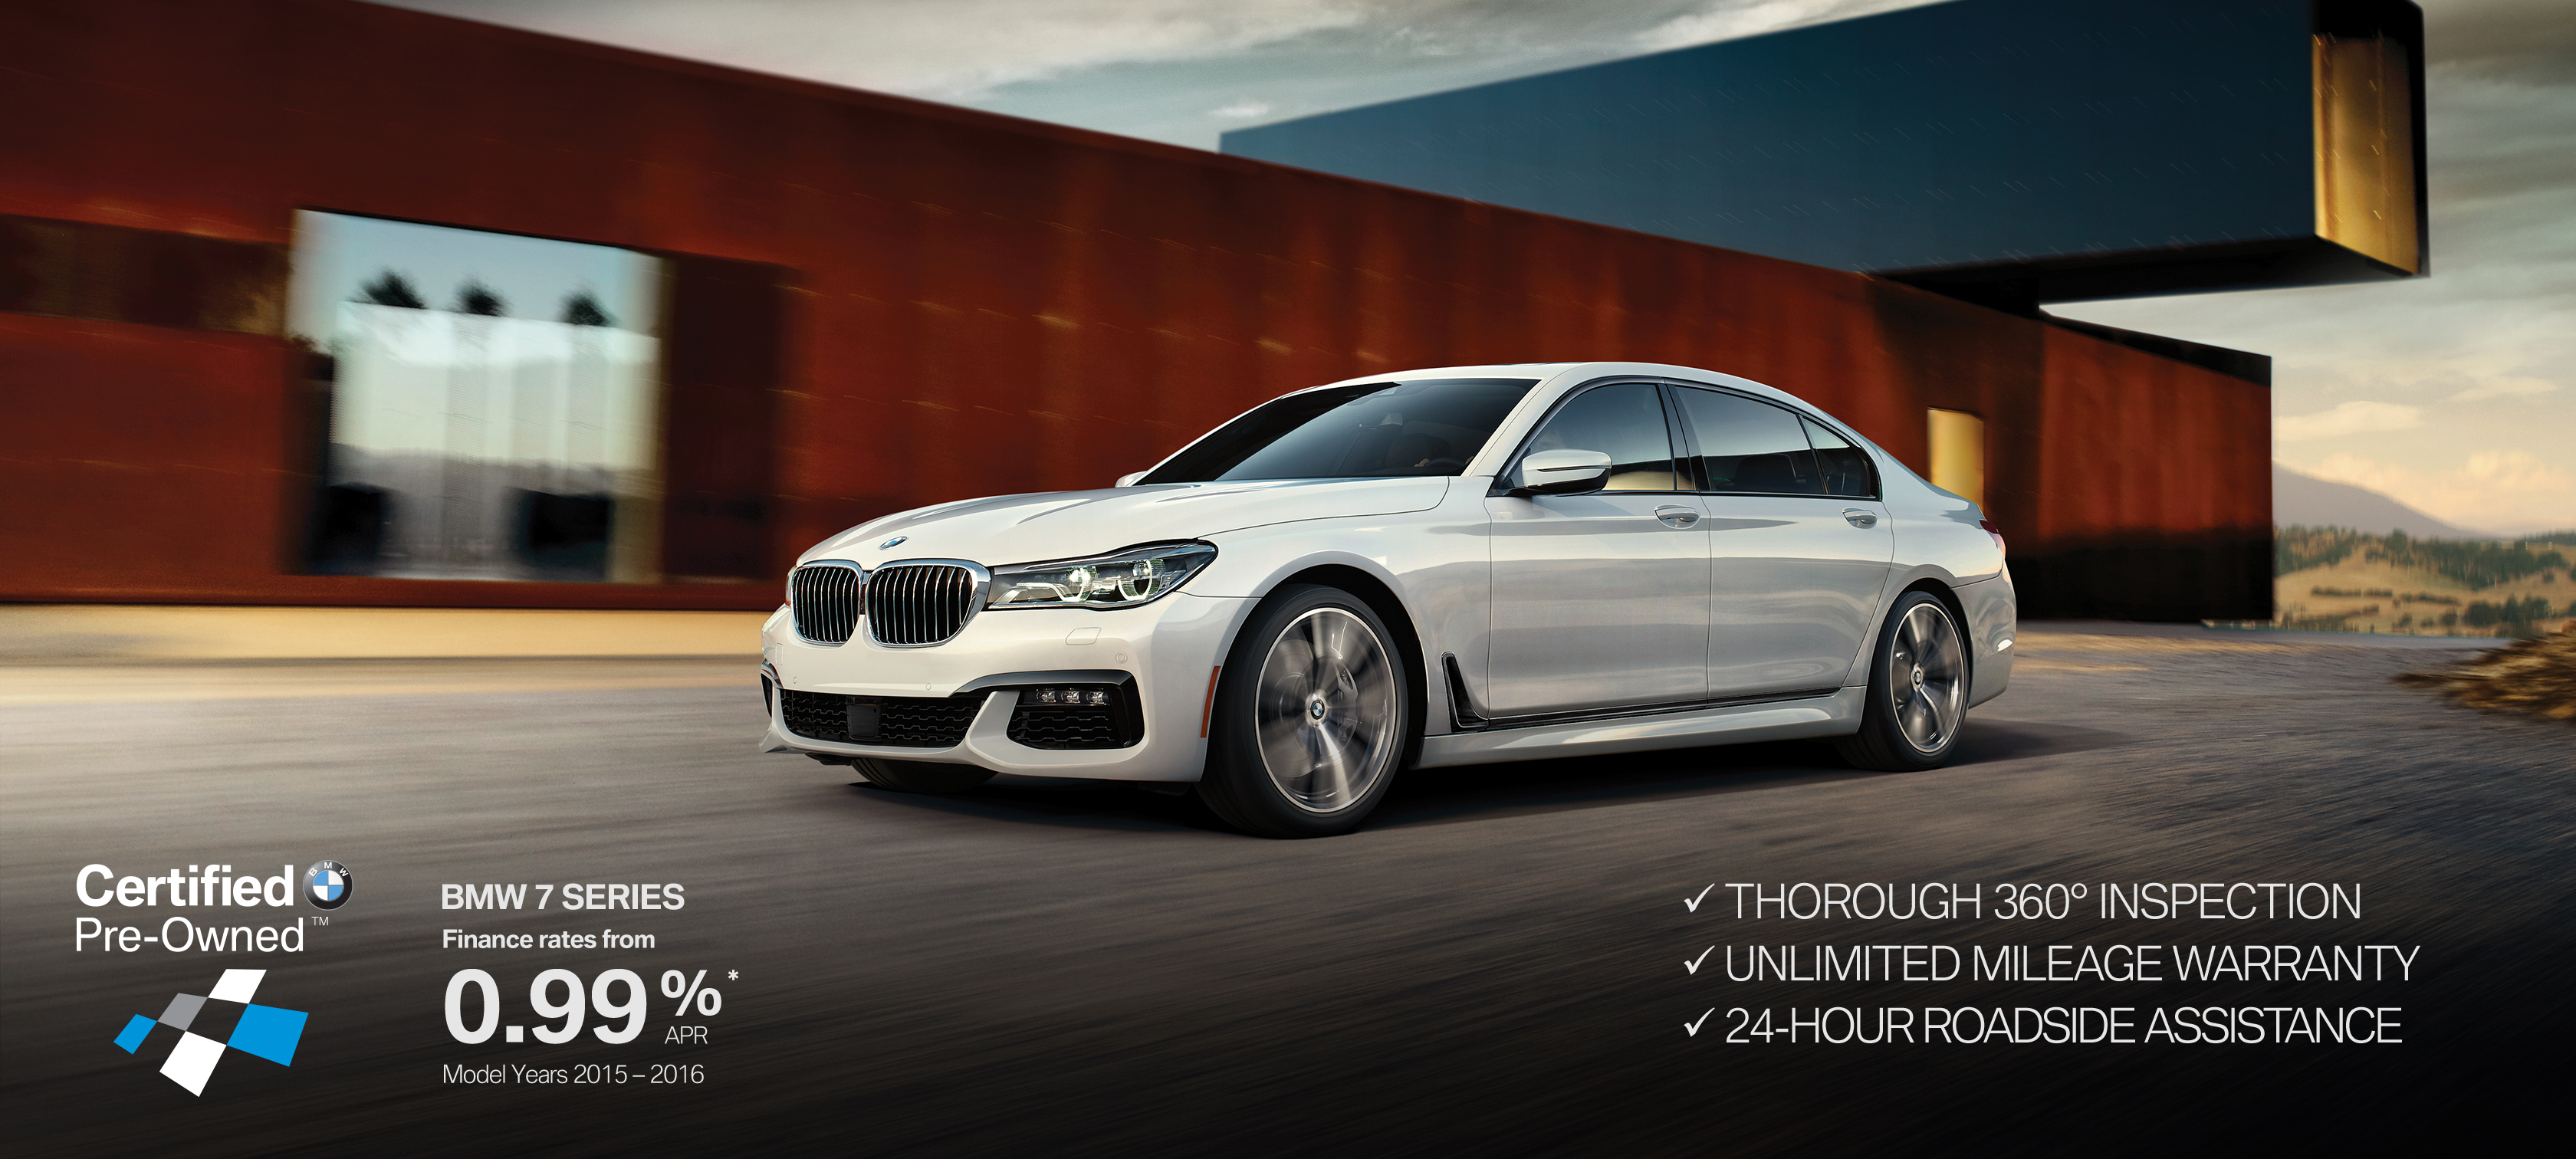 Bmw Certified Pre Owned Warranty >> Pre Owned Learn More